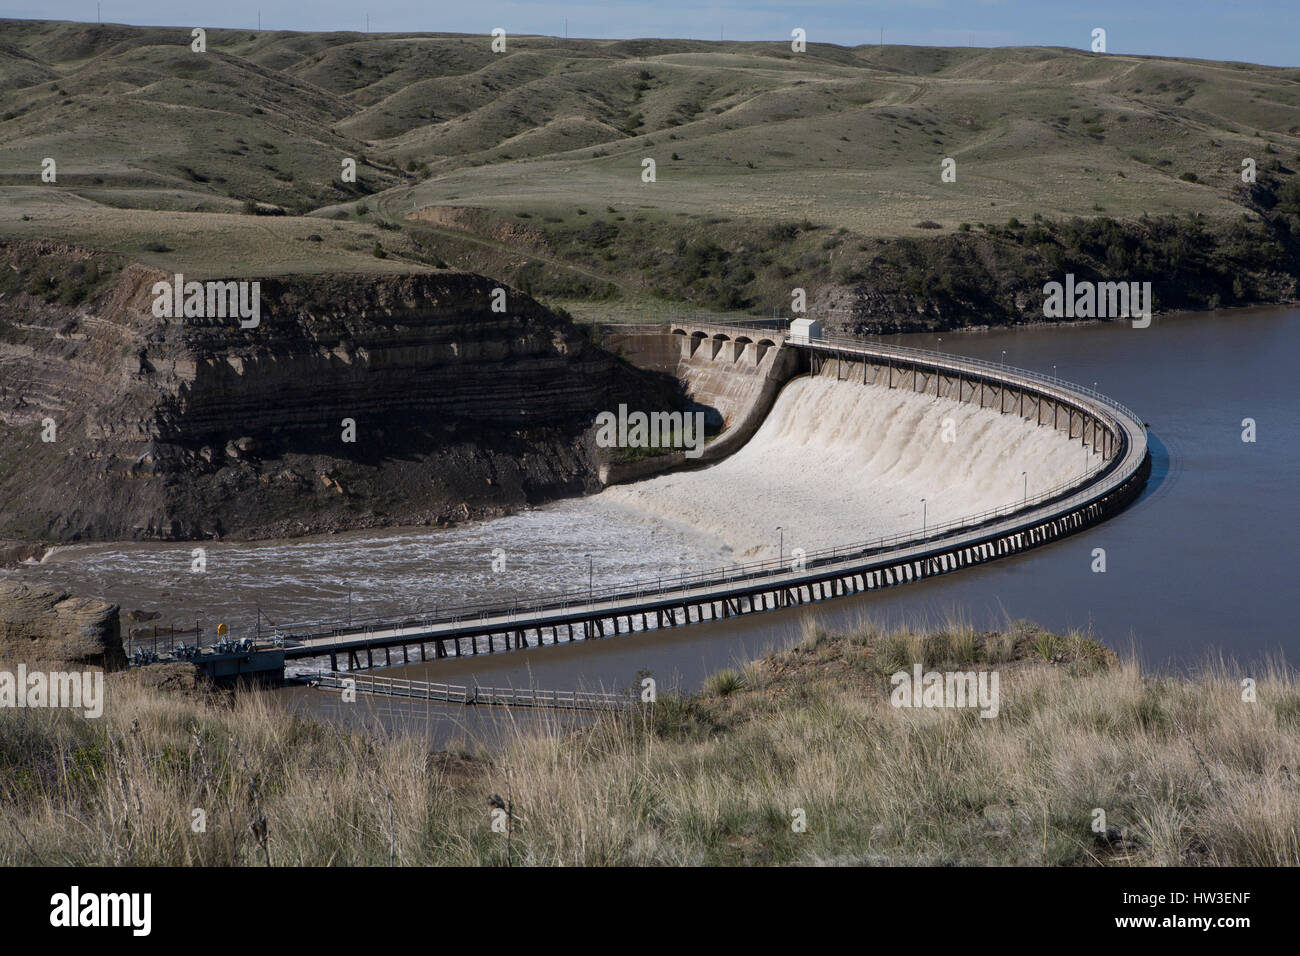 Graceful arc of Ryan Dam on the Missouri River. - Stock Image